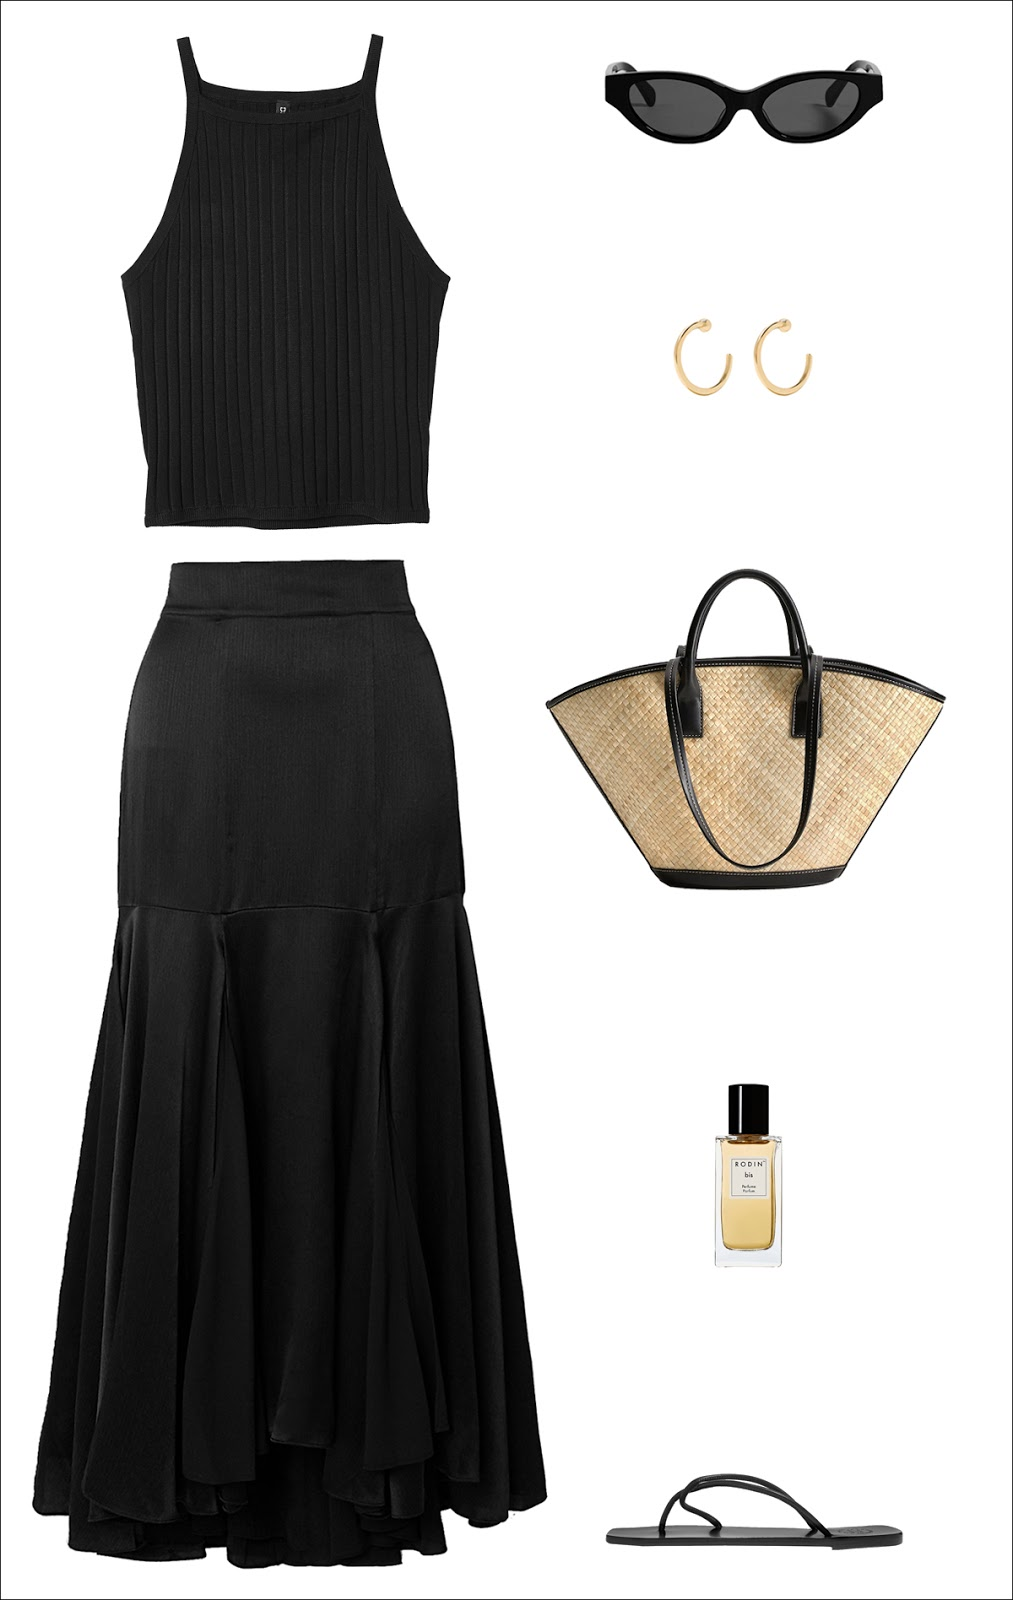 All-Black Minimalist Summer Outfit Idea: ribbed tank top, cat-eye sunglasses, simple hoop earrings, an elevated straw tote, silk midi skirt, and strappy flat sandals